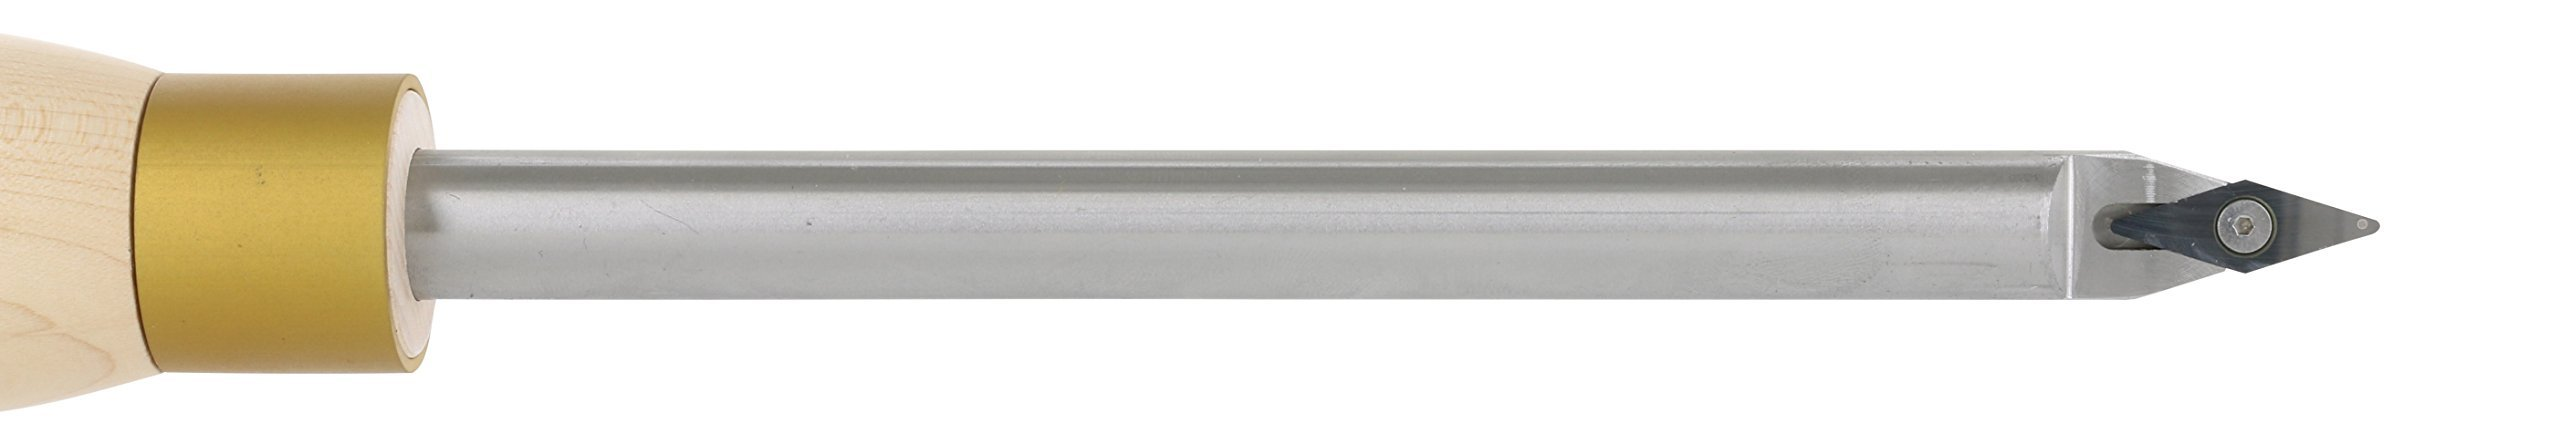 AXE Diamond Replaceable Bit, Full Size Carbide Turning Tool